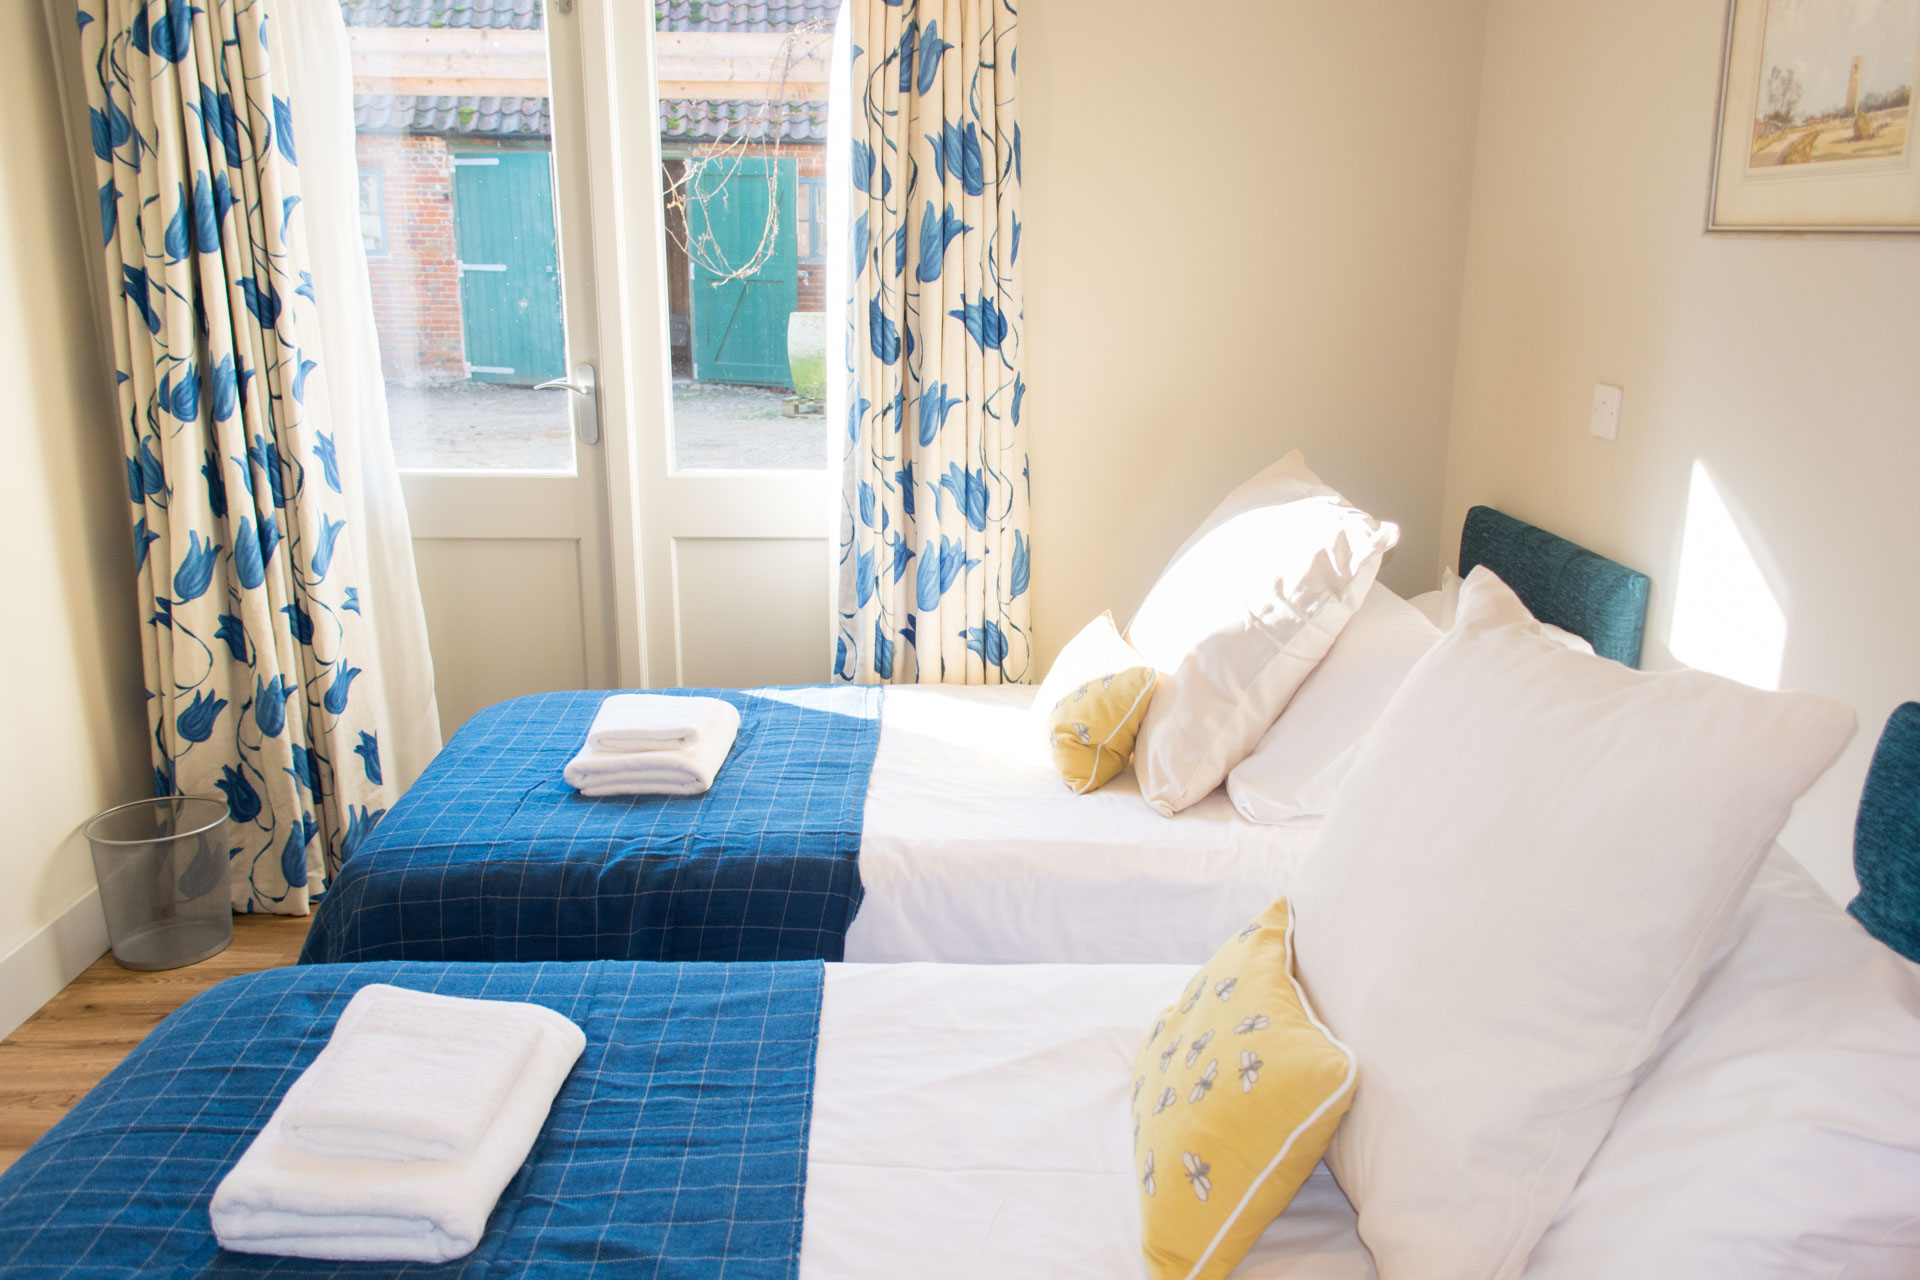 Holiday cottage downstairs twin room.